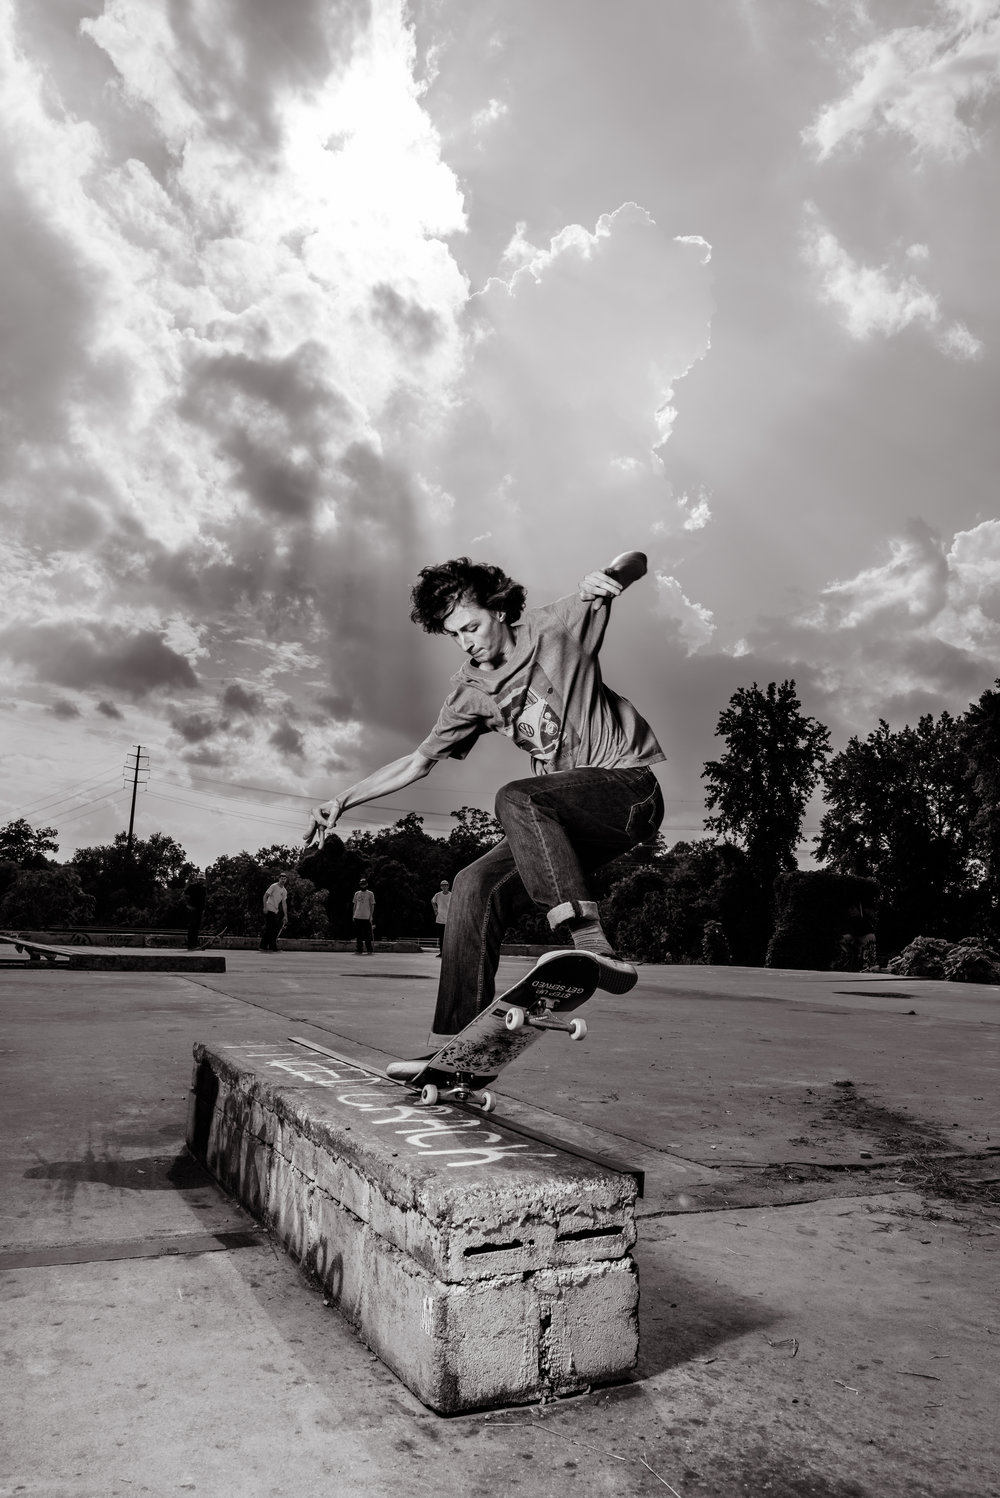 0923.SkateboardingPoeMill.WillCrooks4.WillCrooks.jpg